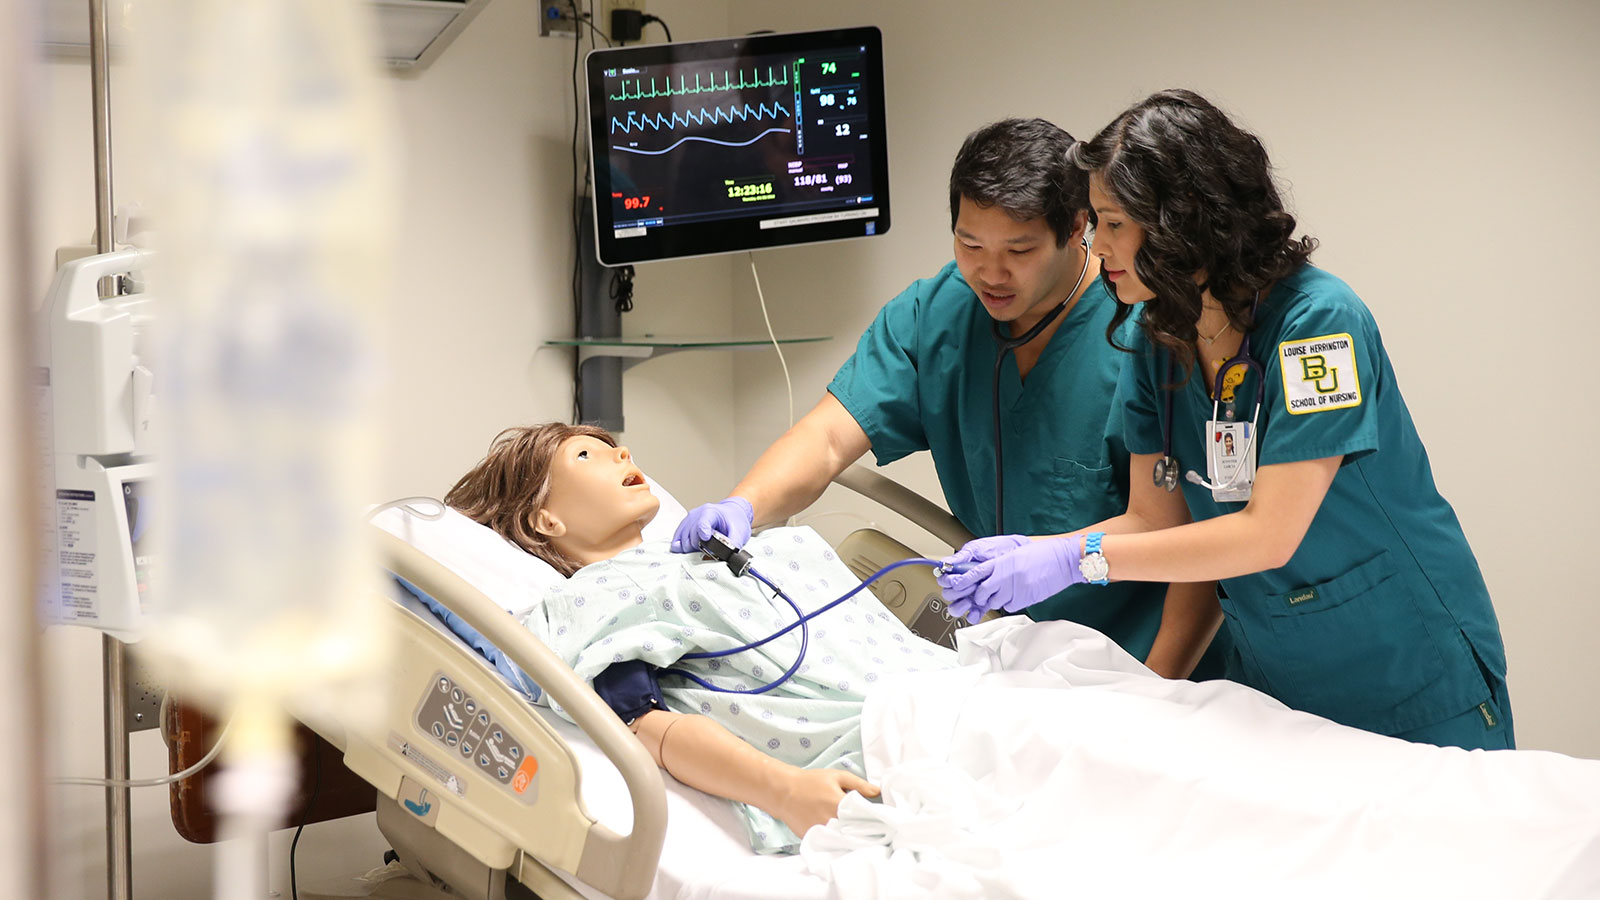 Within a Christian community, the Louise Herrington School of Nursing prepares nurses for professional practice, health care leadership and service to society.